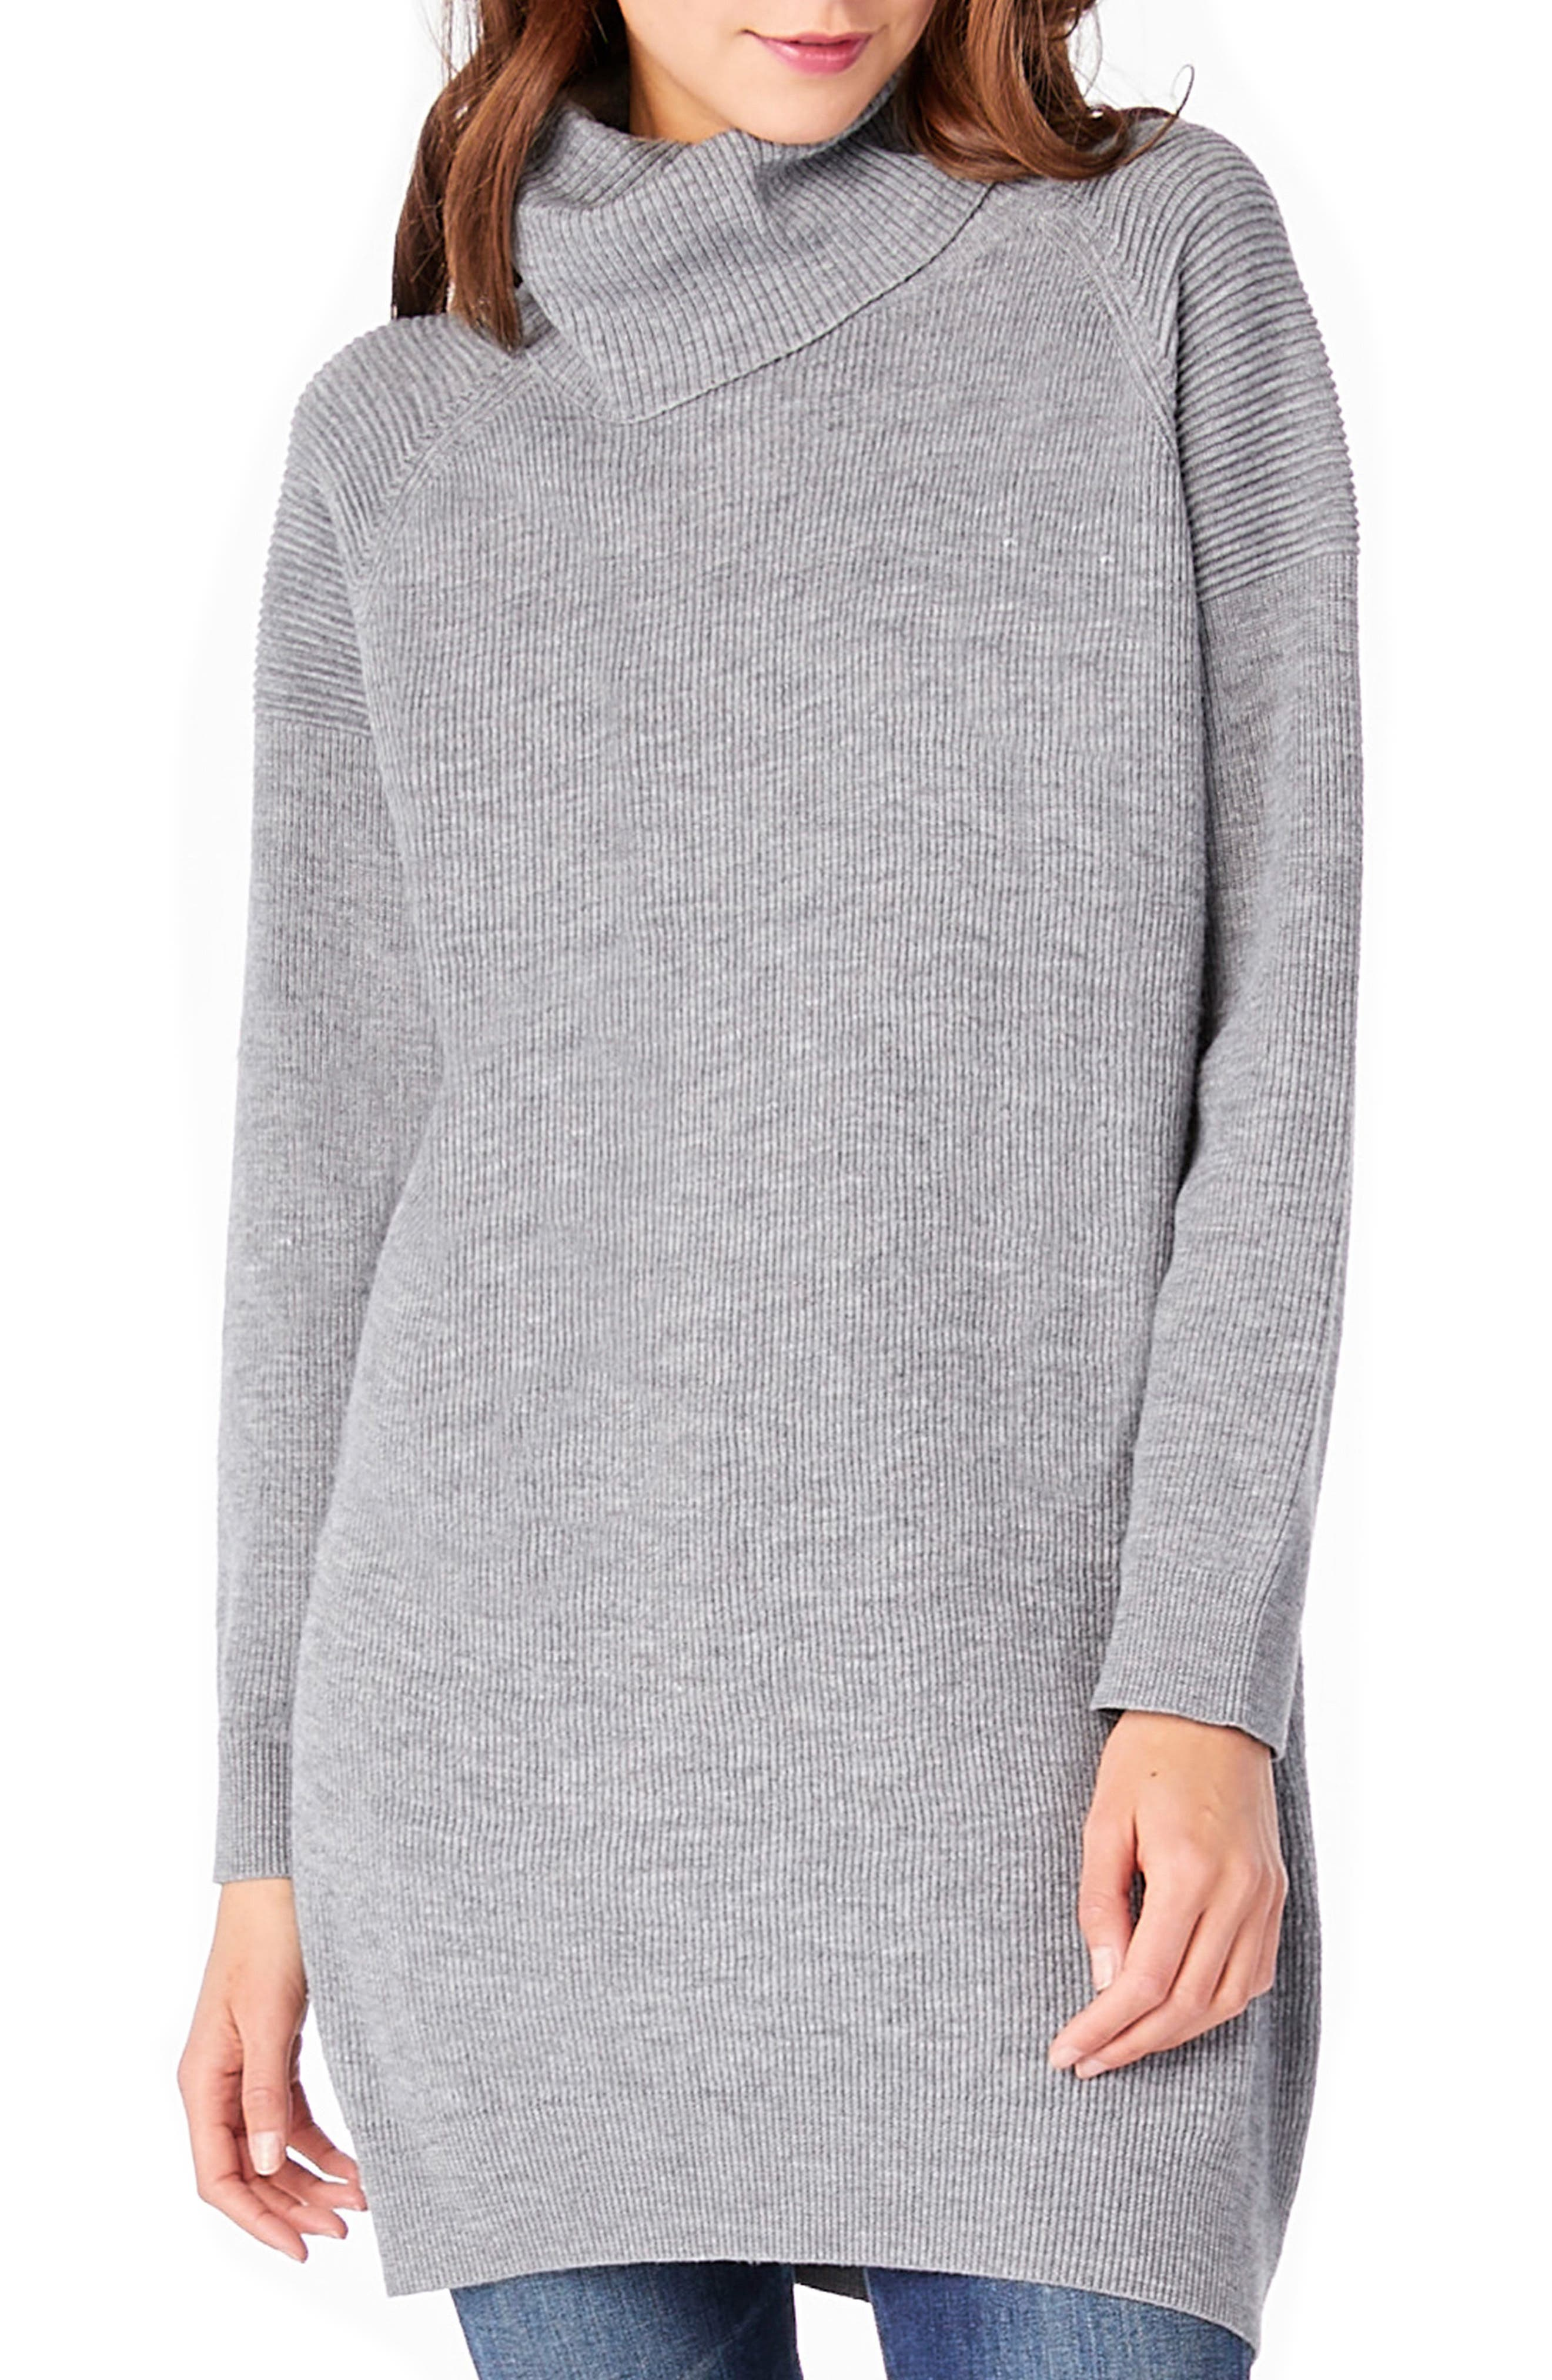 Cowl Neck Tunic,                             Main thumbnail 1, color,                             Heather Grey